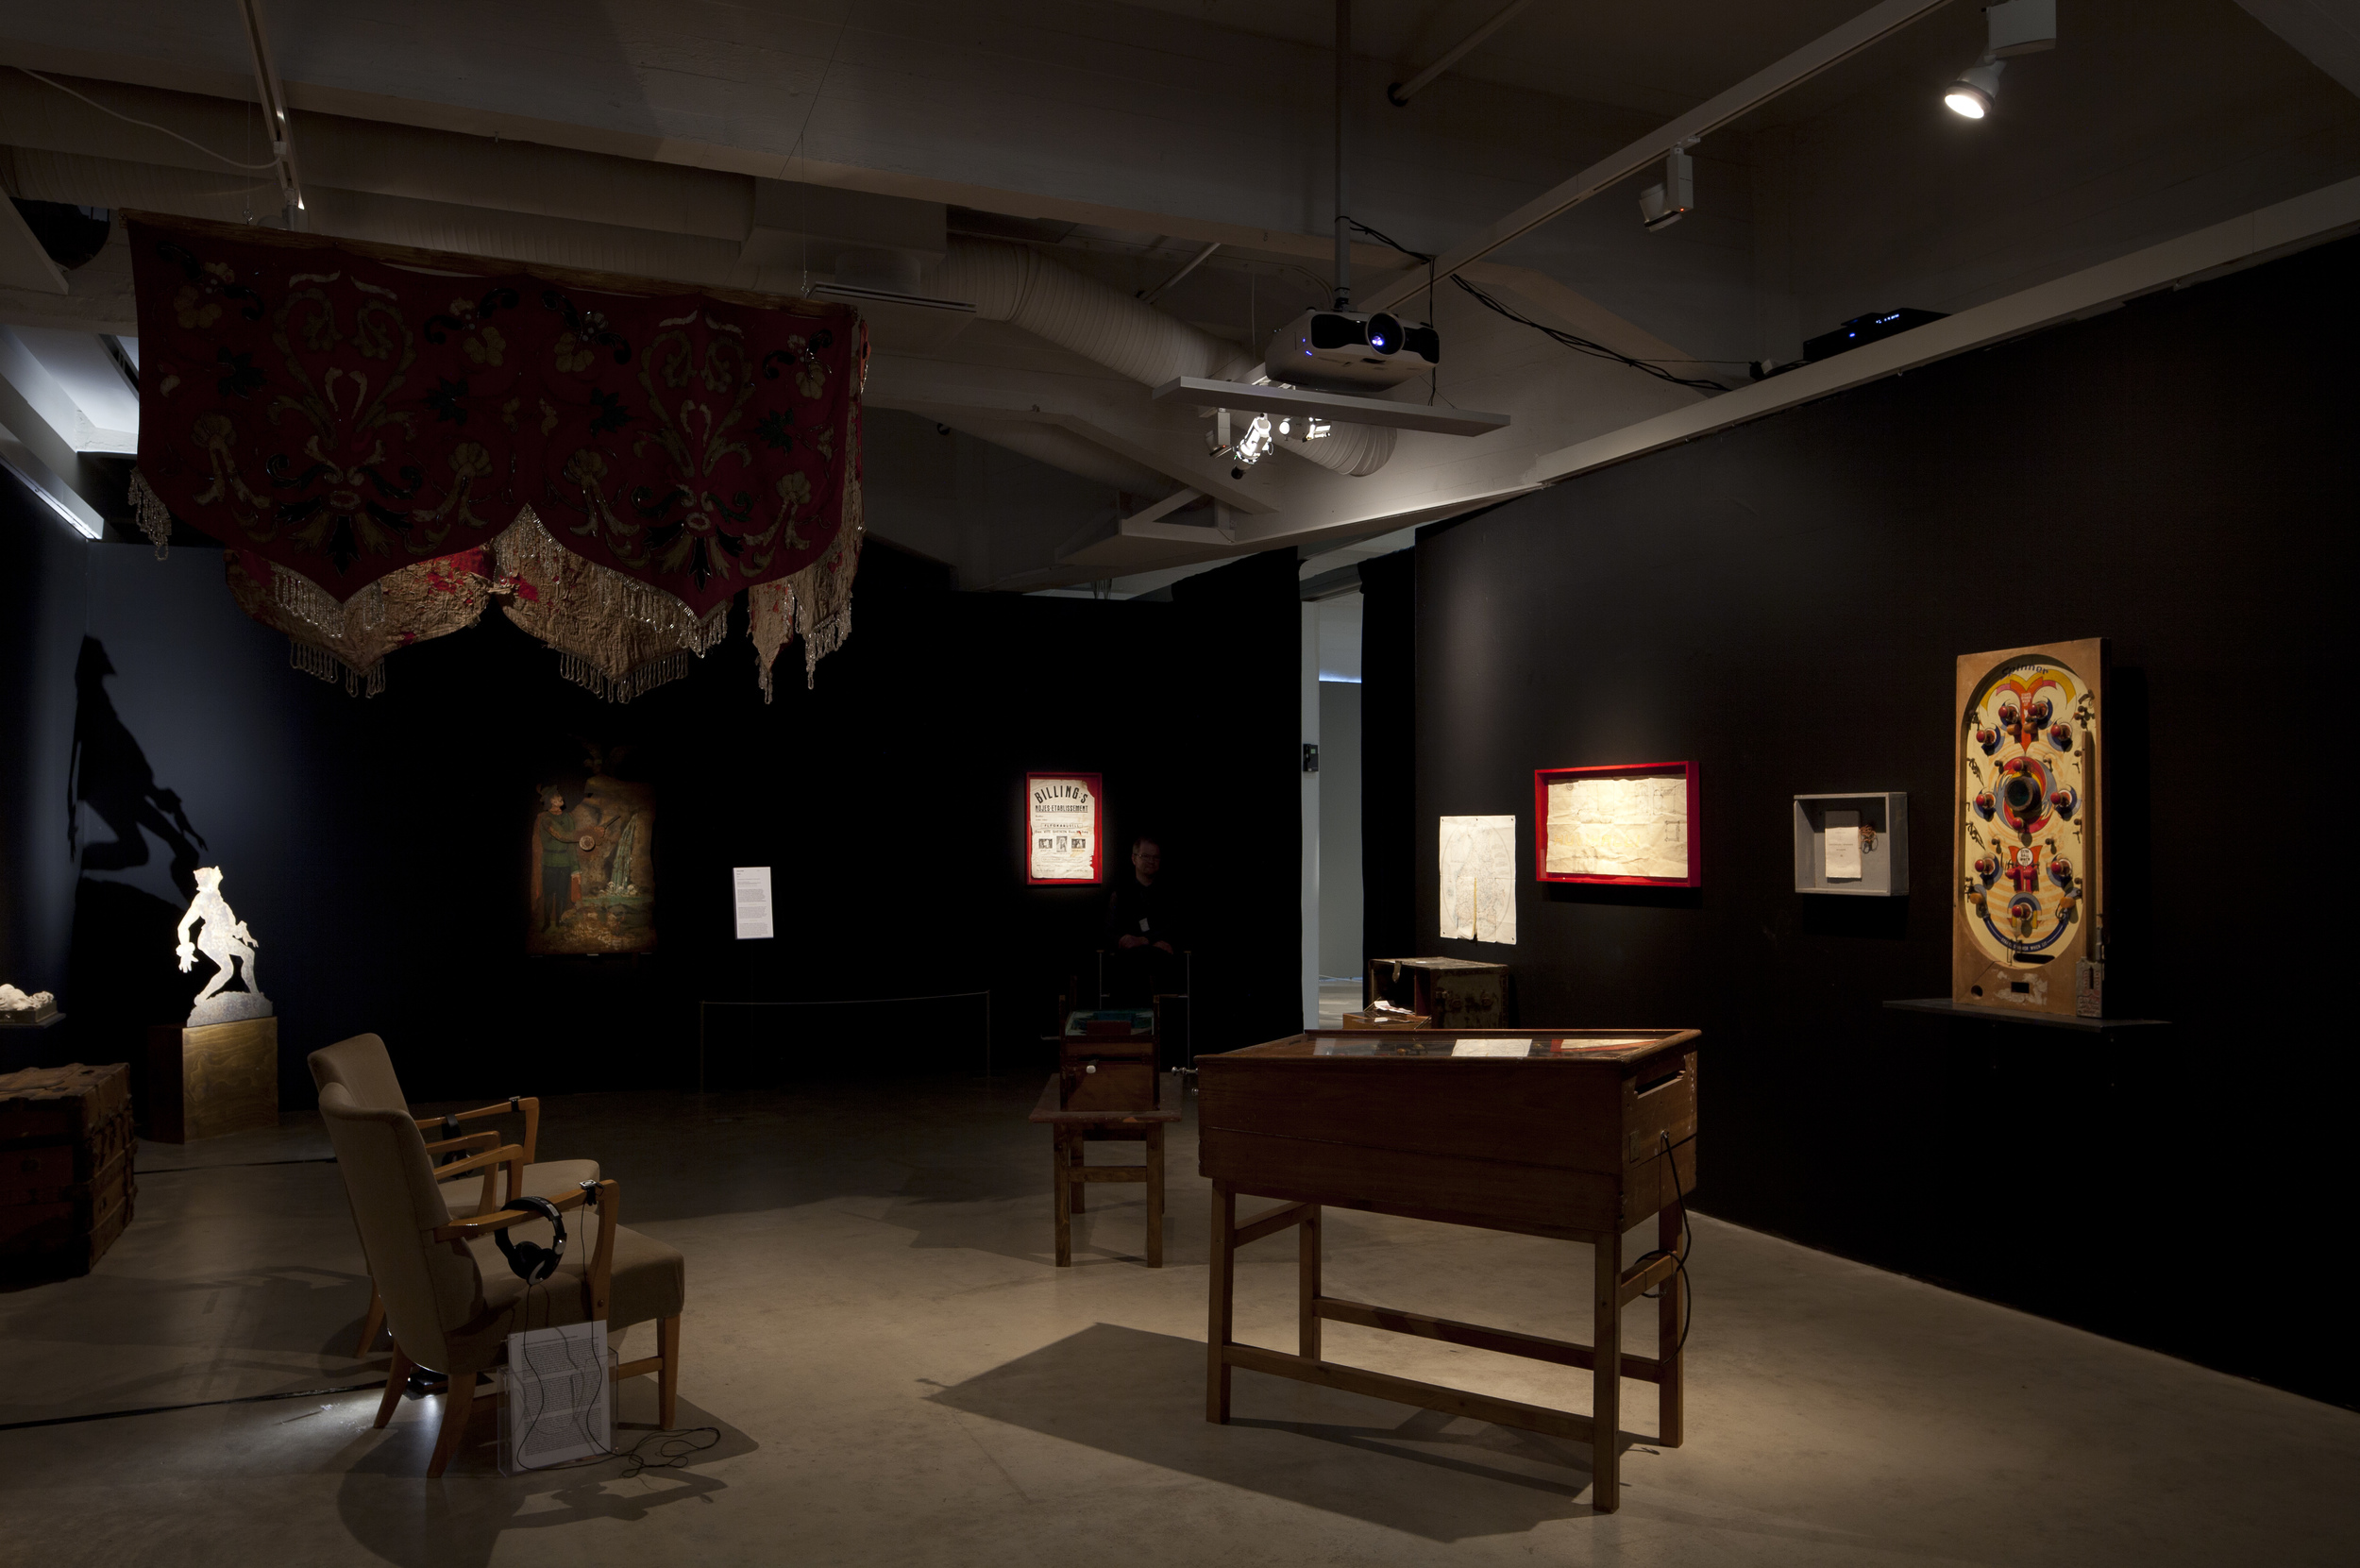 Marjo Levlin: TheHumbug Tent and The Black Cabinet, 2013, installation view